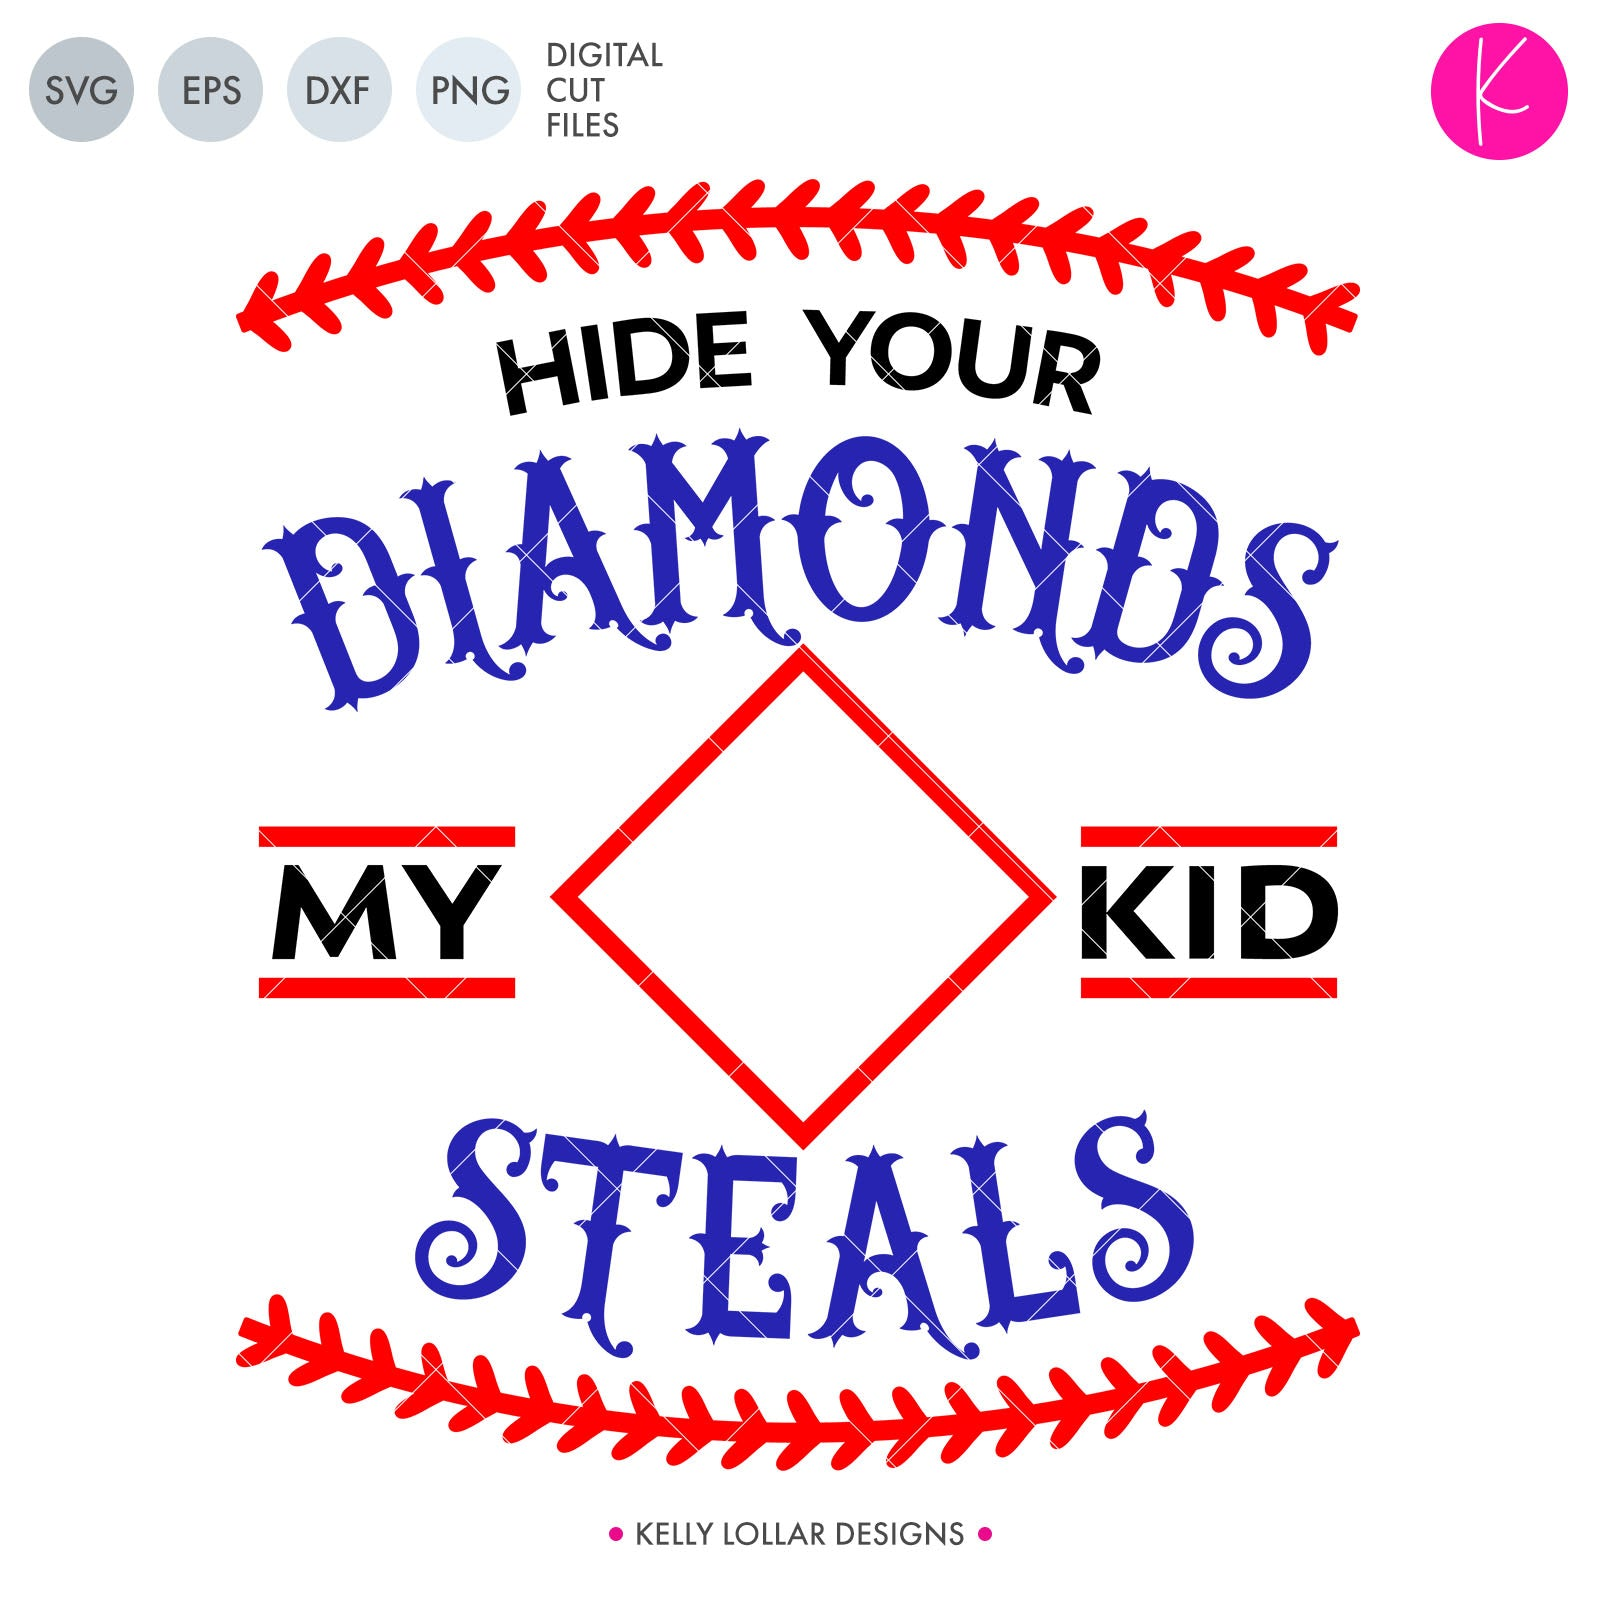 Hide Your Diamonds My Kid Steals SVG Cut File Baseball and Softball Quote for Mom and Dad with Space to Add Your Player's Number | SVG DXF PNG Cut Files 1 file for each format place in the diamond